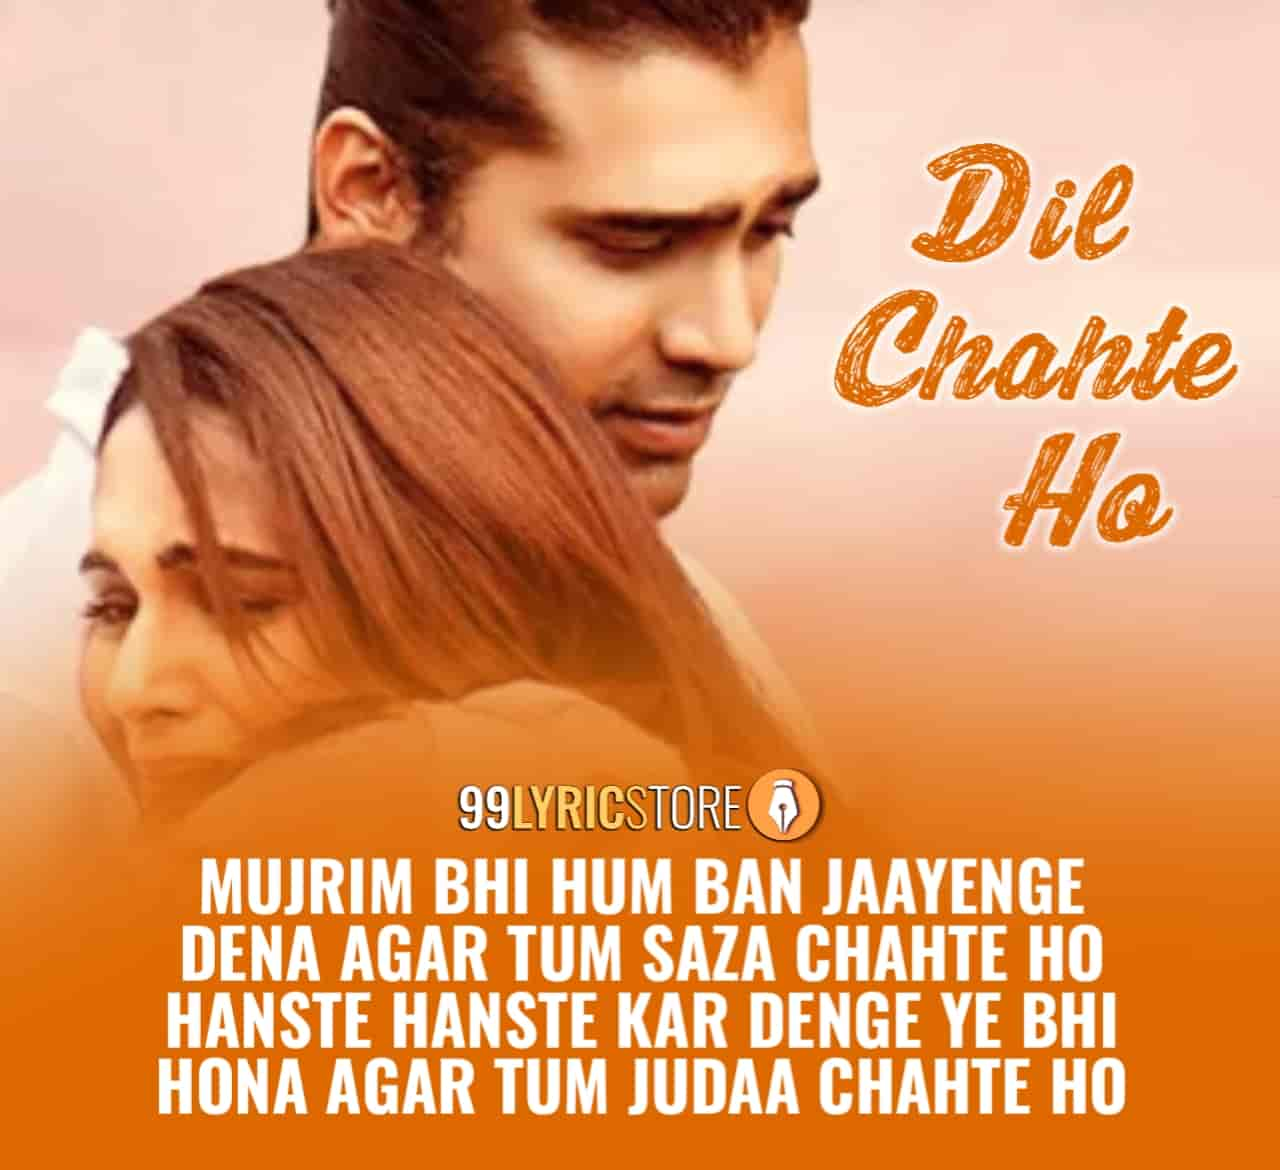 Dil Chahte Ho Hindi Song Image By Jubin Nautiyal and Payal Dev